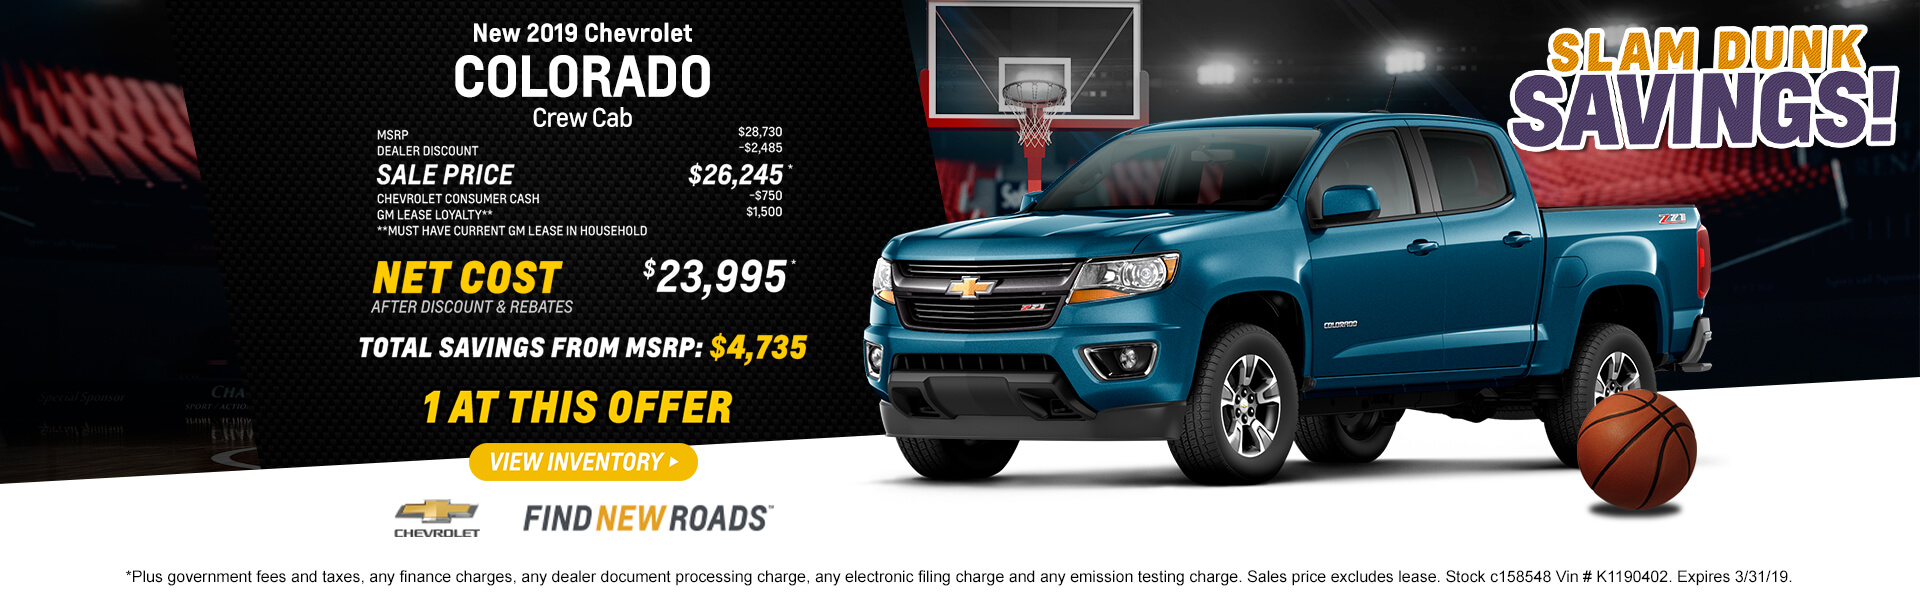 2019 Colorado $23,995 *Plus government fees and taxes, any finance charges, any dealer document processing charge, any electronic filing charge and any emission testing charge. Sales price excludes lease. Stock c158548 Vin # K1190402. Expires 3/31/19